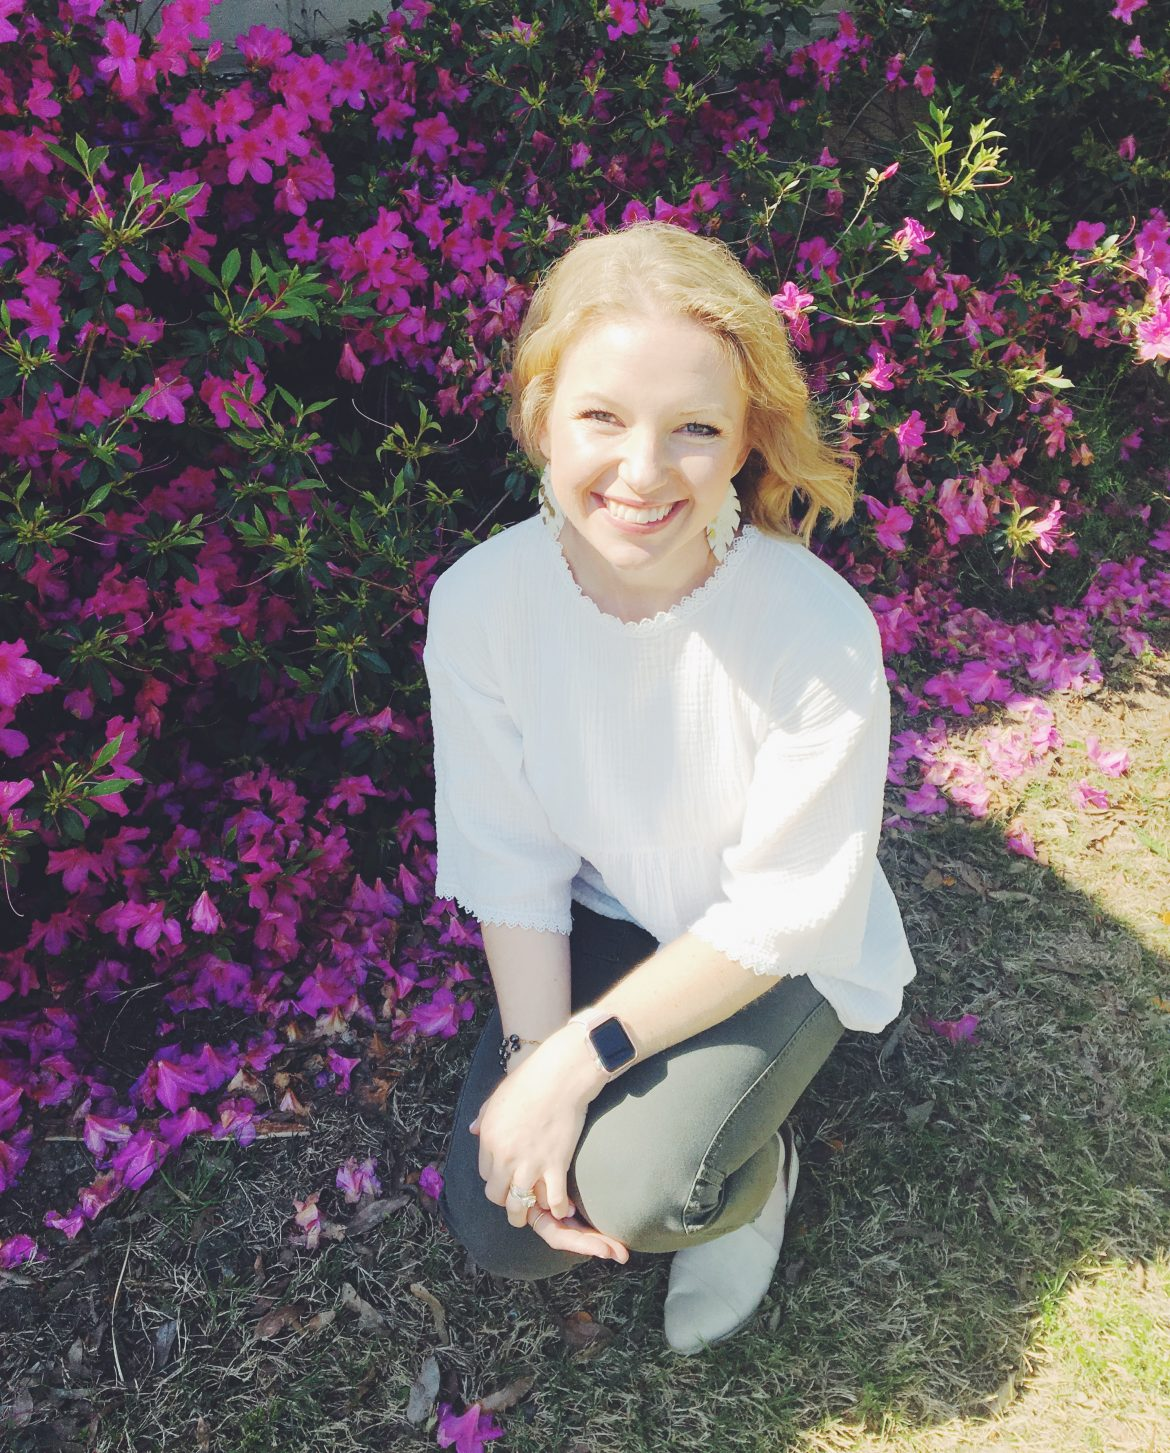 Five Fun Facts About the Girl Behind the Blog